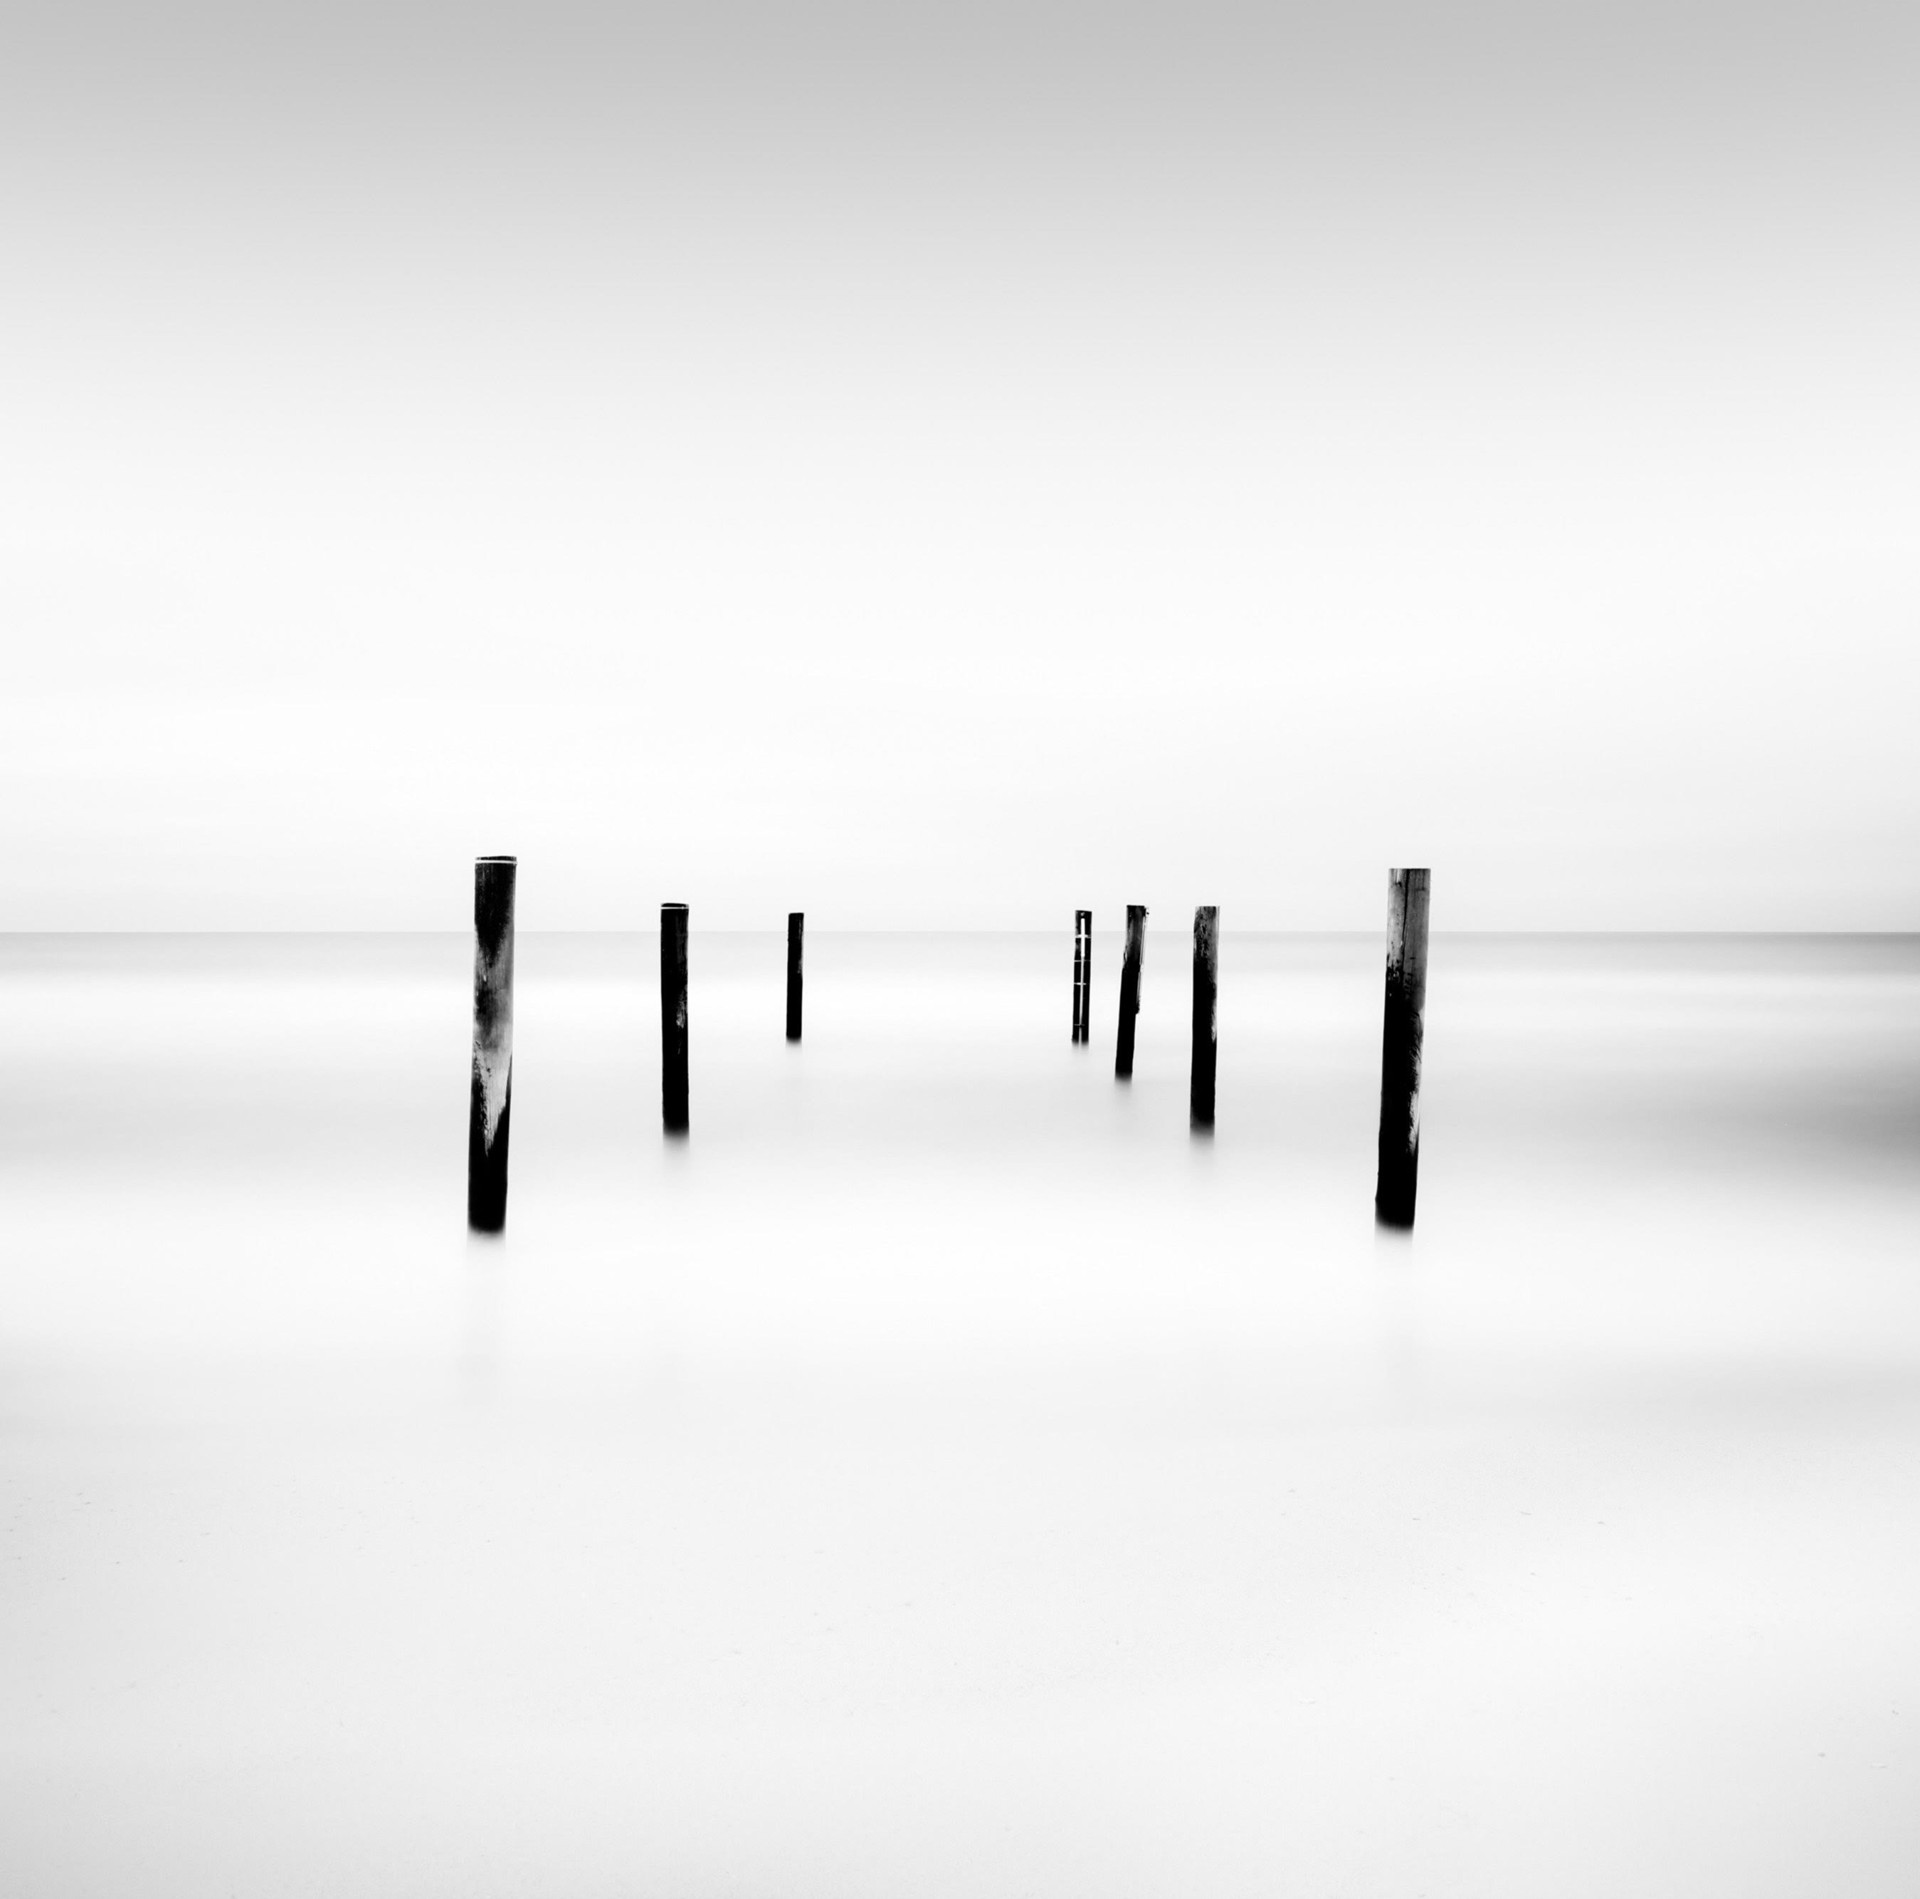 Pilings by Keith Ramsdell